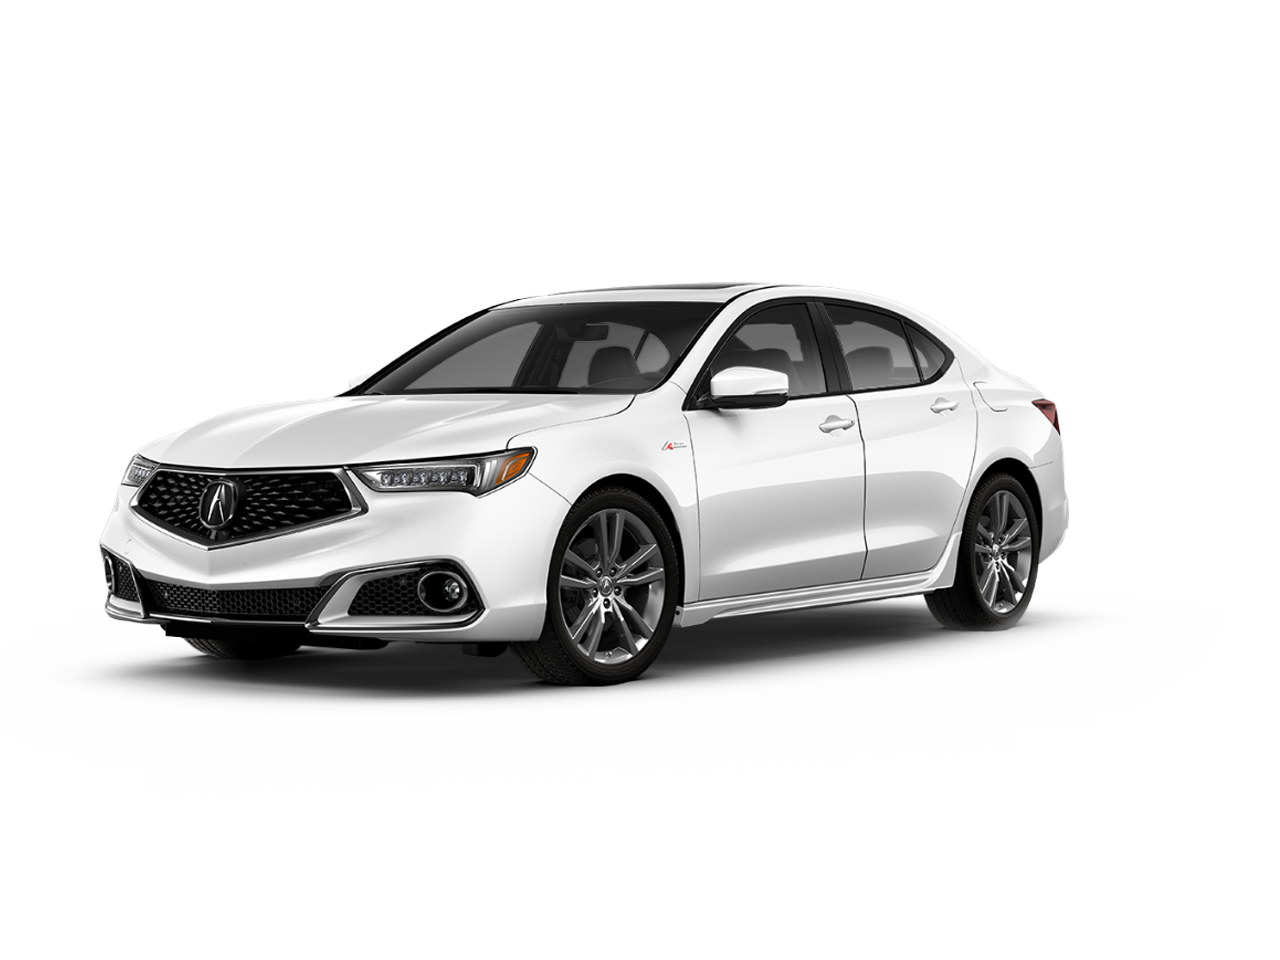 2020 TLX A-Spec